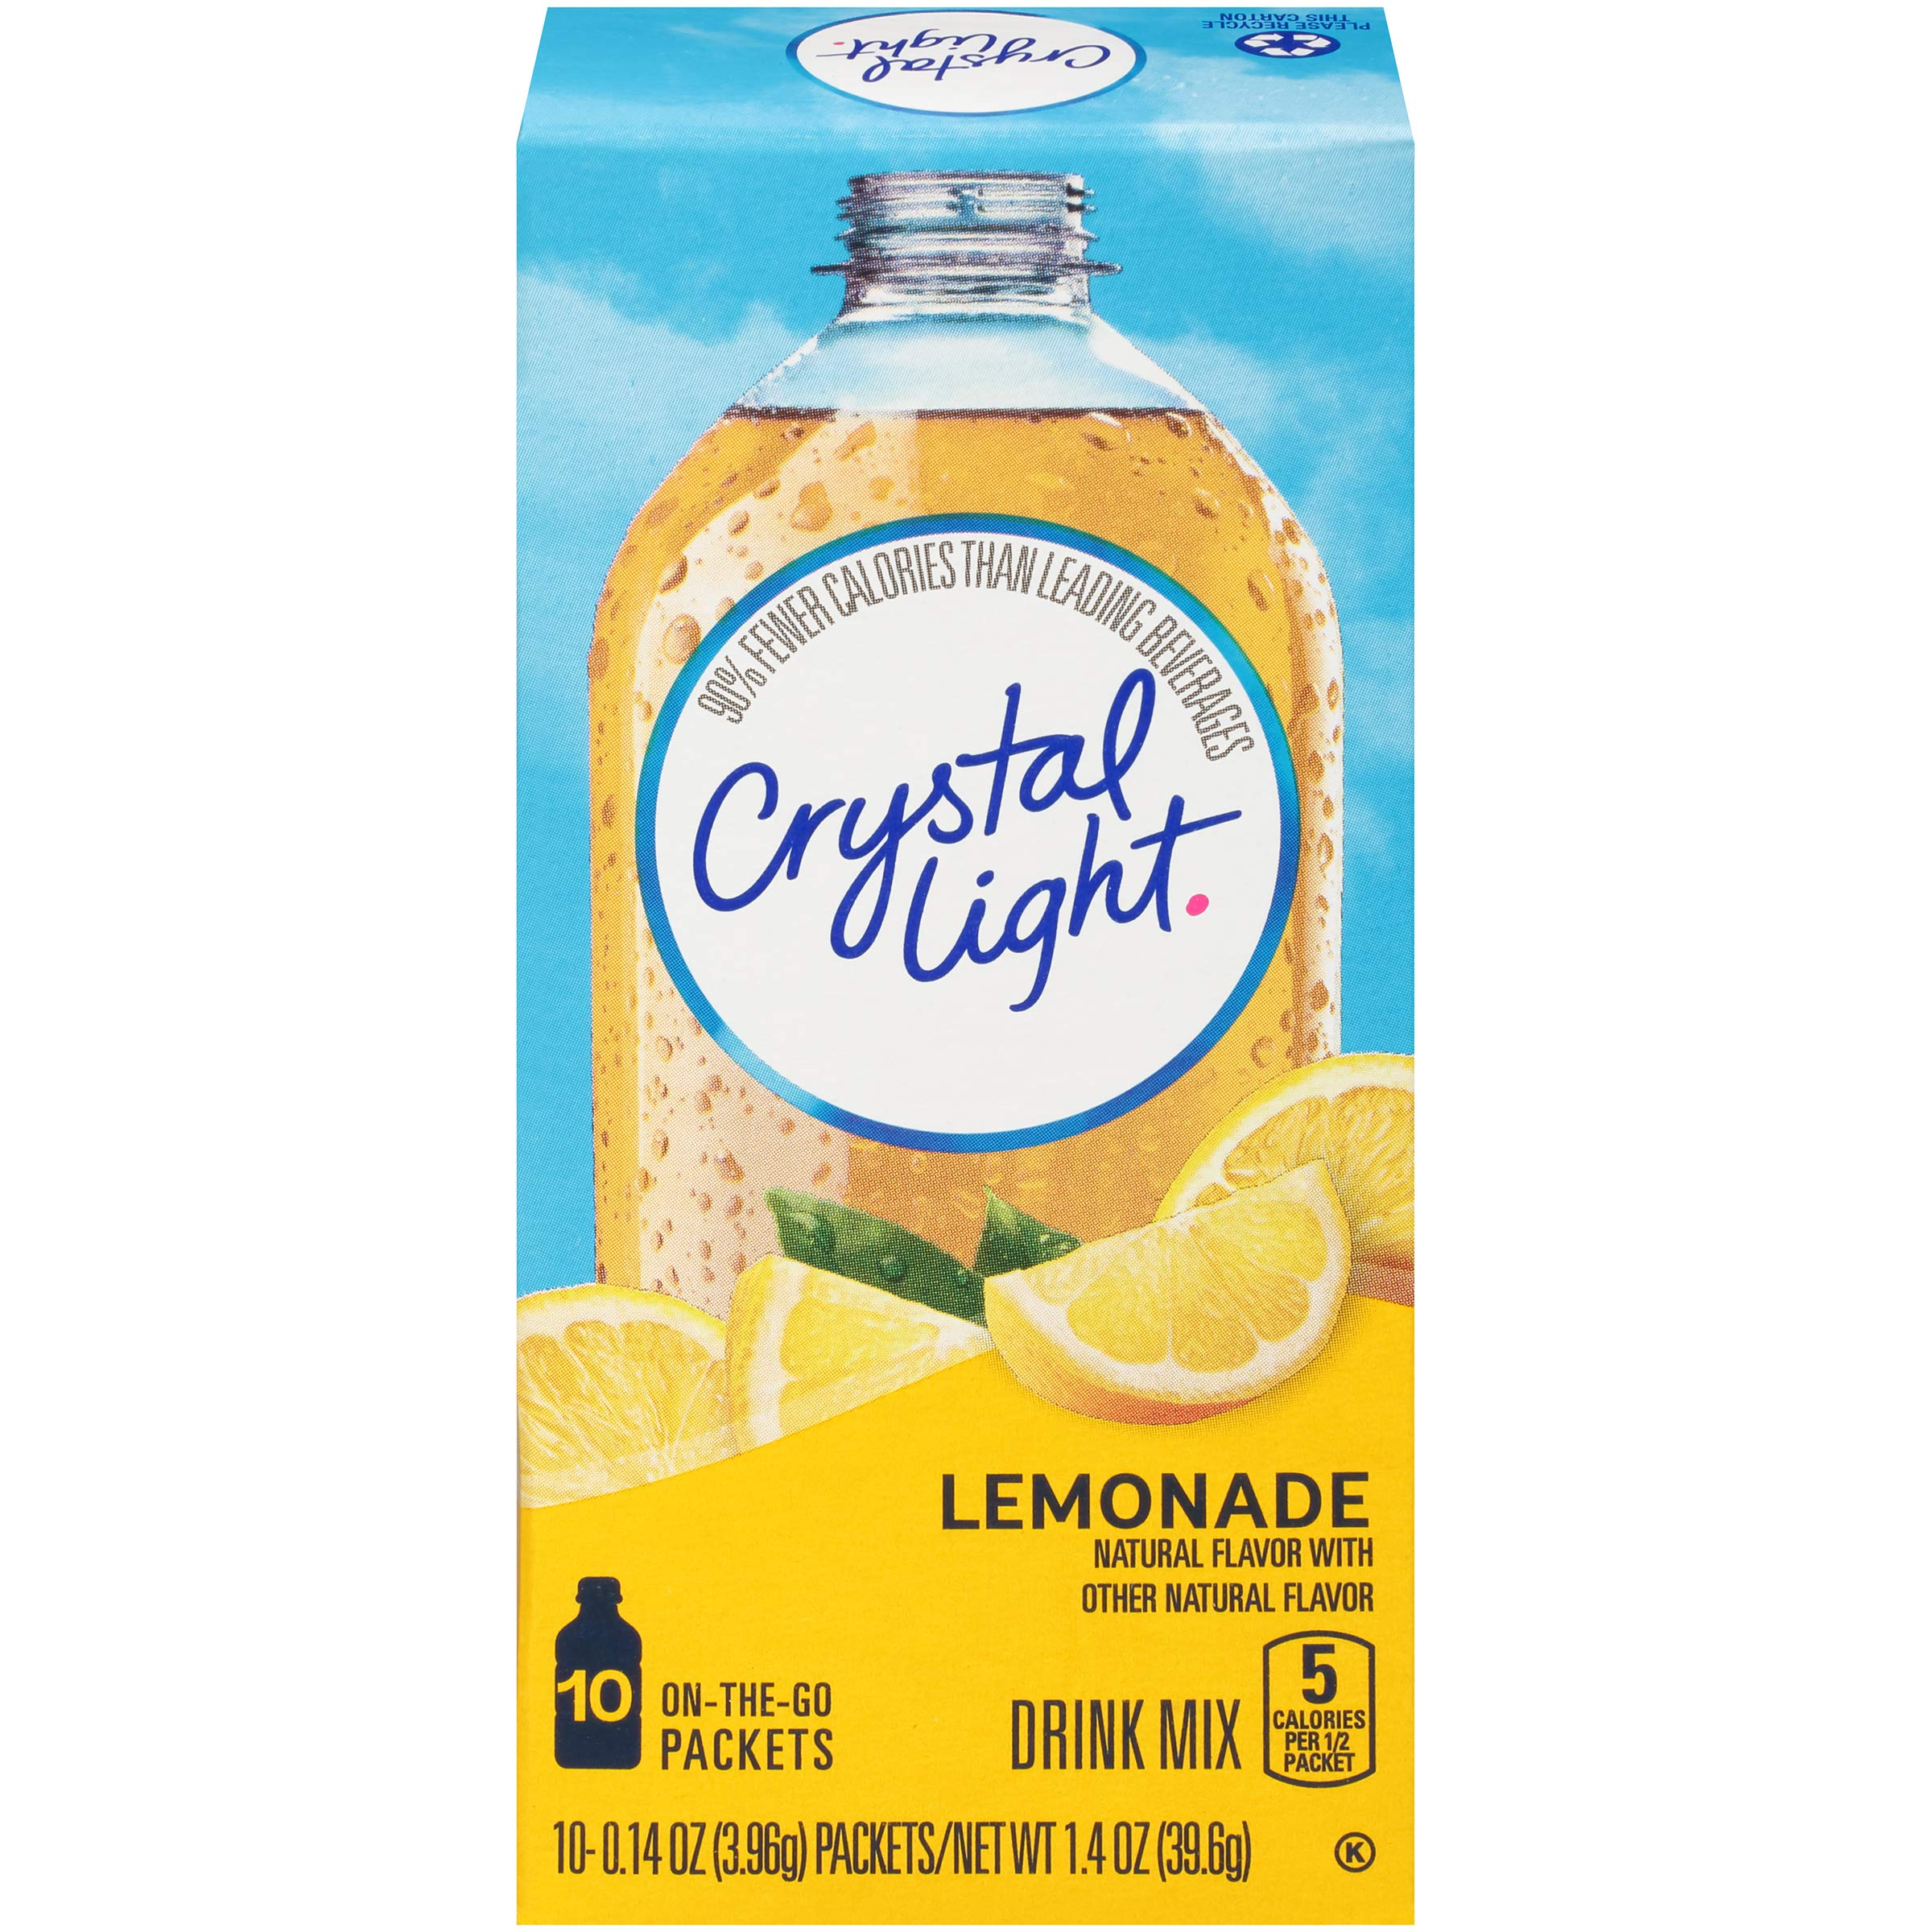 Crystal Light Lemonade Drink Mix (10 On the Go Packets)